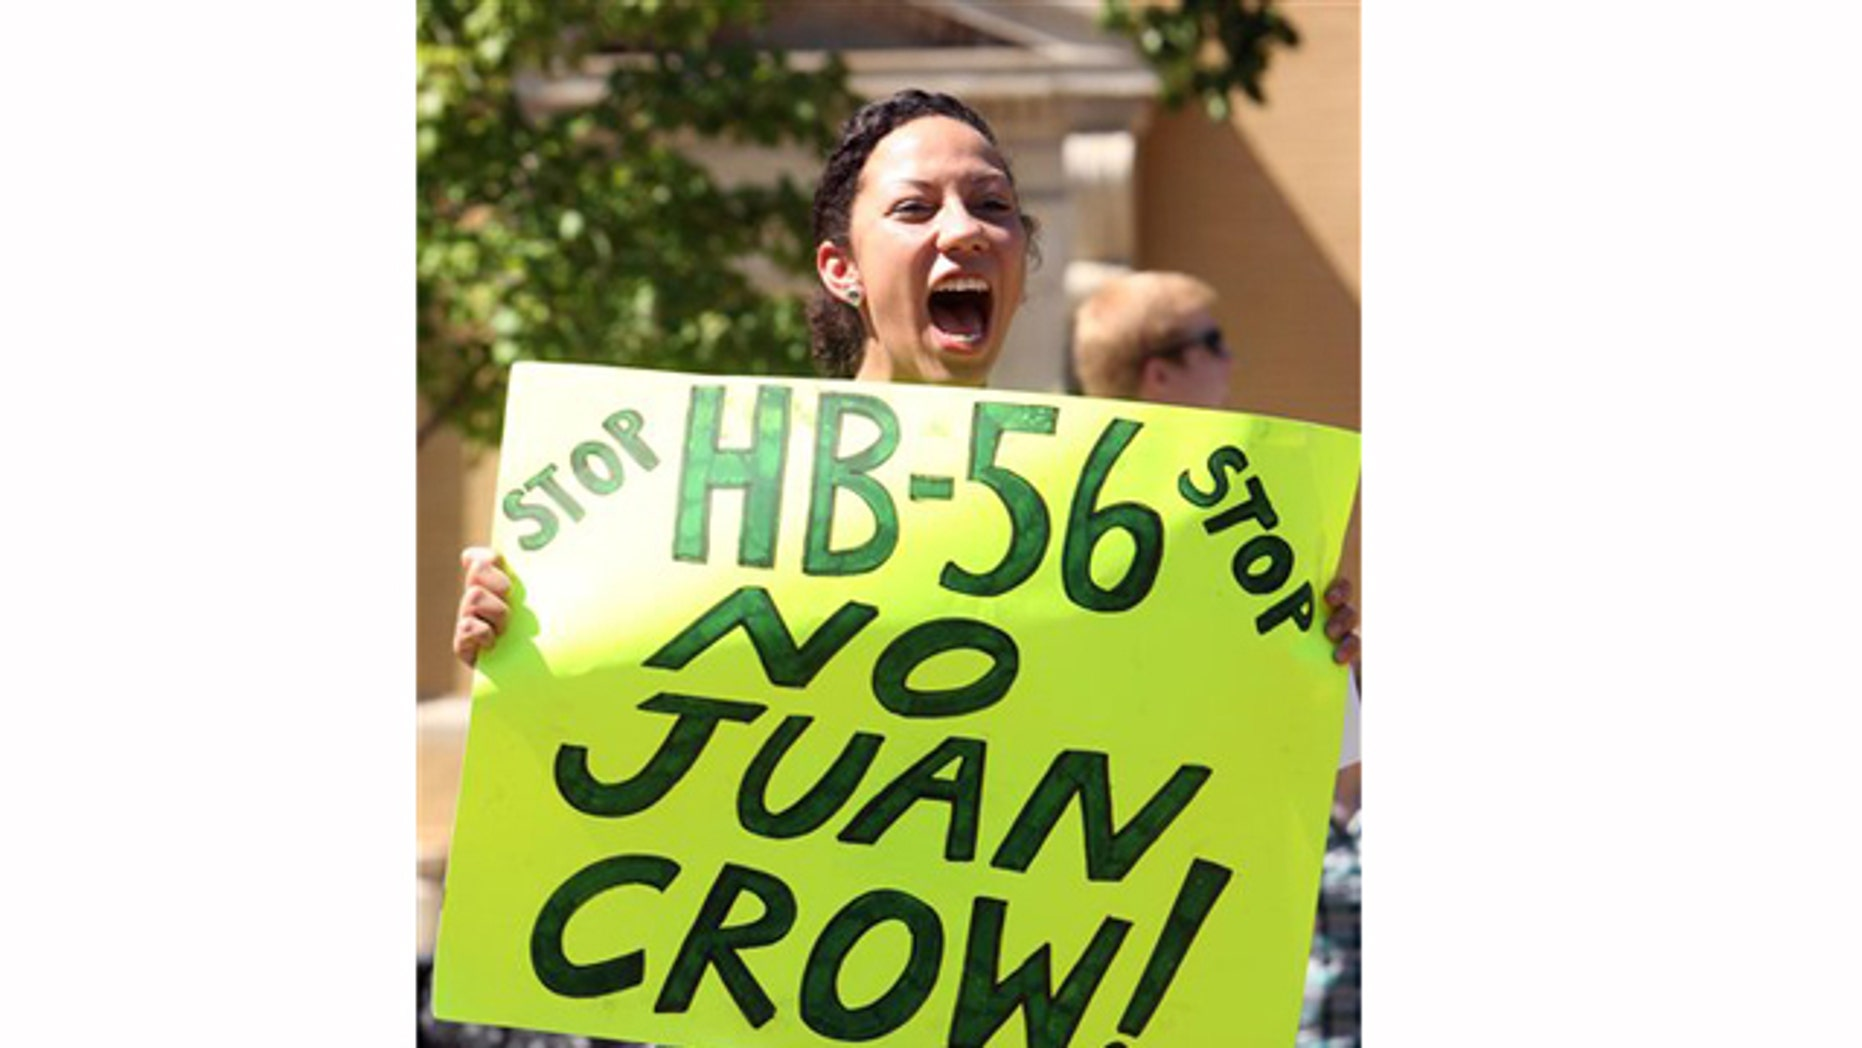 Ashley Hendricks, a University of Alabama student from Huntsville, holds a sign and chants while protesting HB-56 on Wednesday, Sept. 28, 2011. Approximately 40 students gathered for a protest of the immigration bill on the University of Alabama campus in Tuscaloosa, Ala.   (AP Photo/Tuscaloosa News, Robert Sutton)